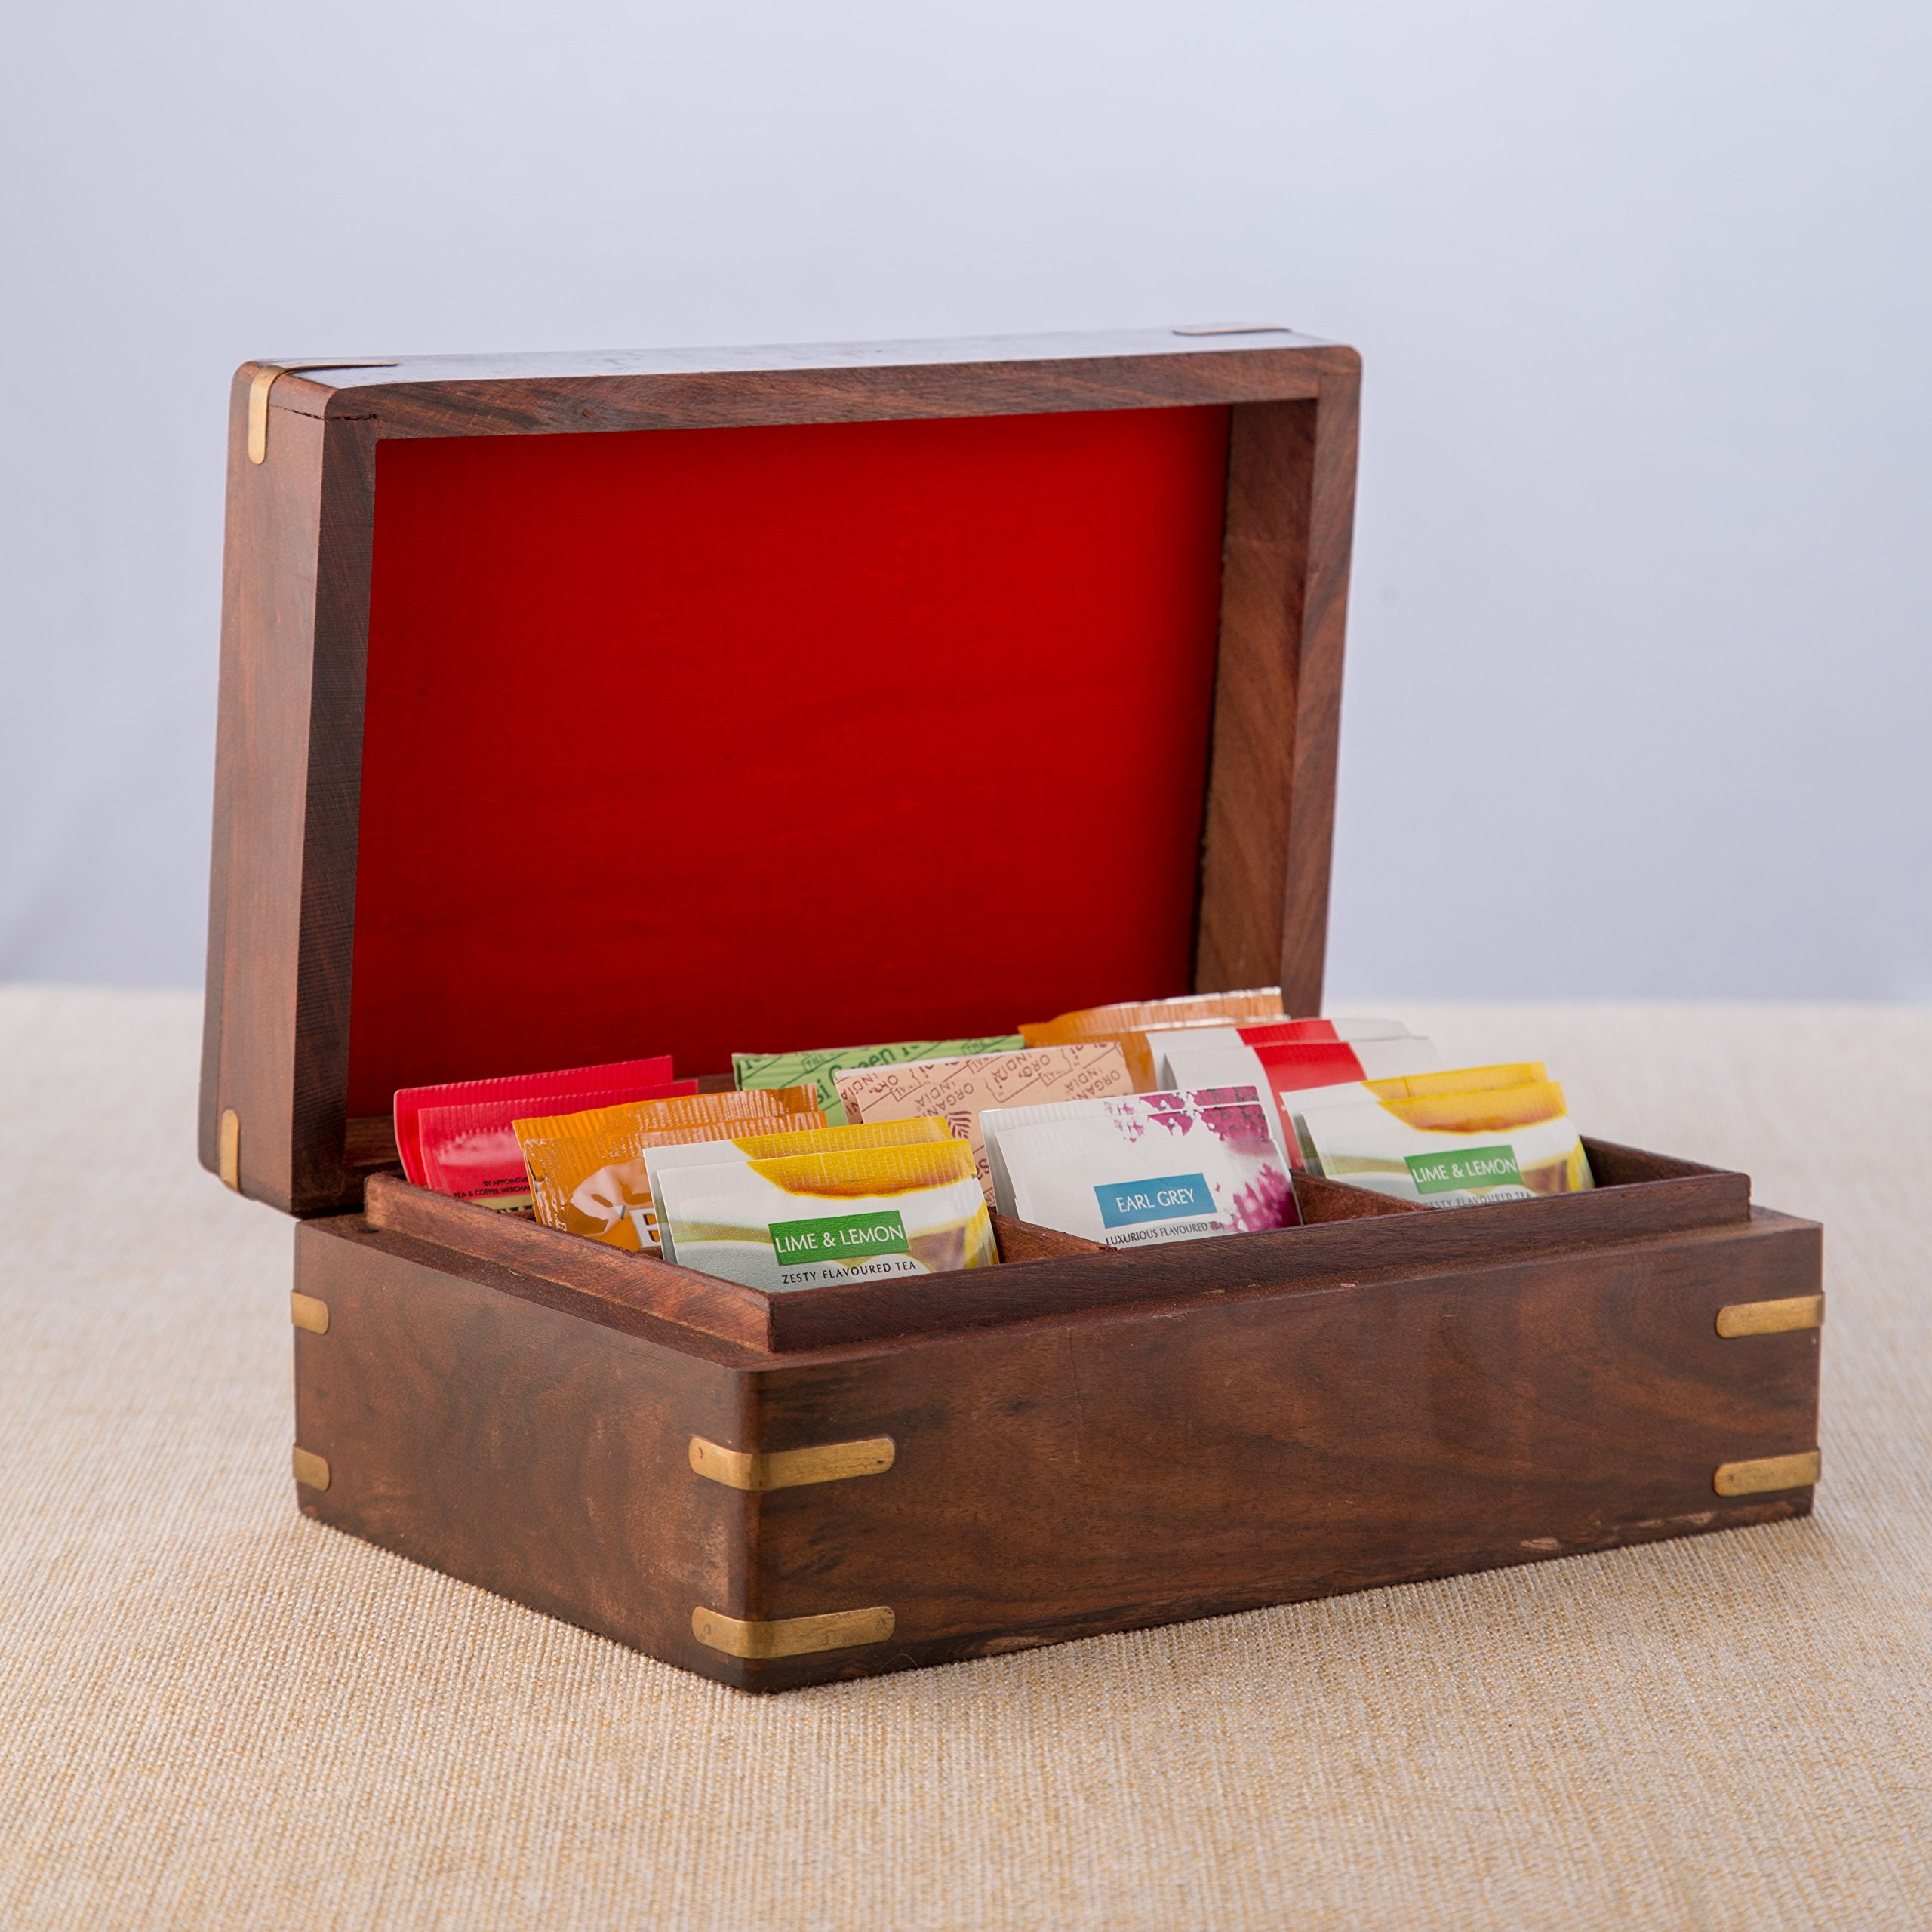 Rusticity Indian Rosewood Antique Treasure Storage Chest Box for Condiment Spice&Jewellery/Vintage Rustic Keepsake Trinket Organizer w/9 Compartments/Handmade Decorative Sheesham Wood Caddy Tea Bag